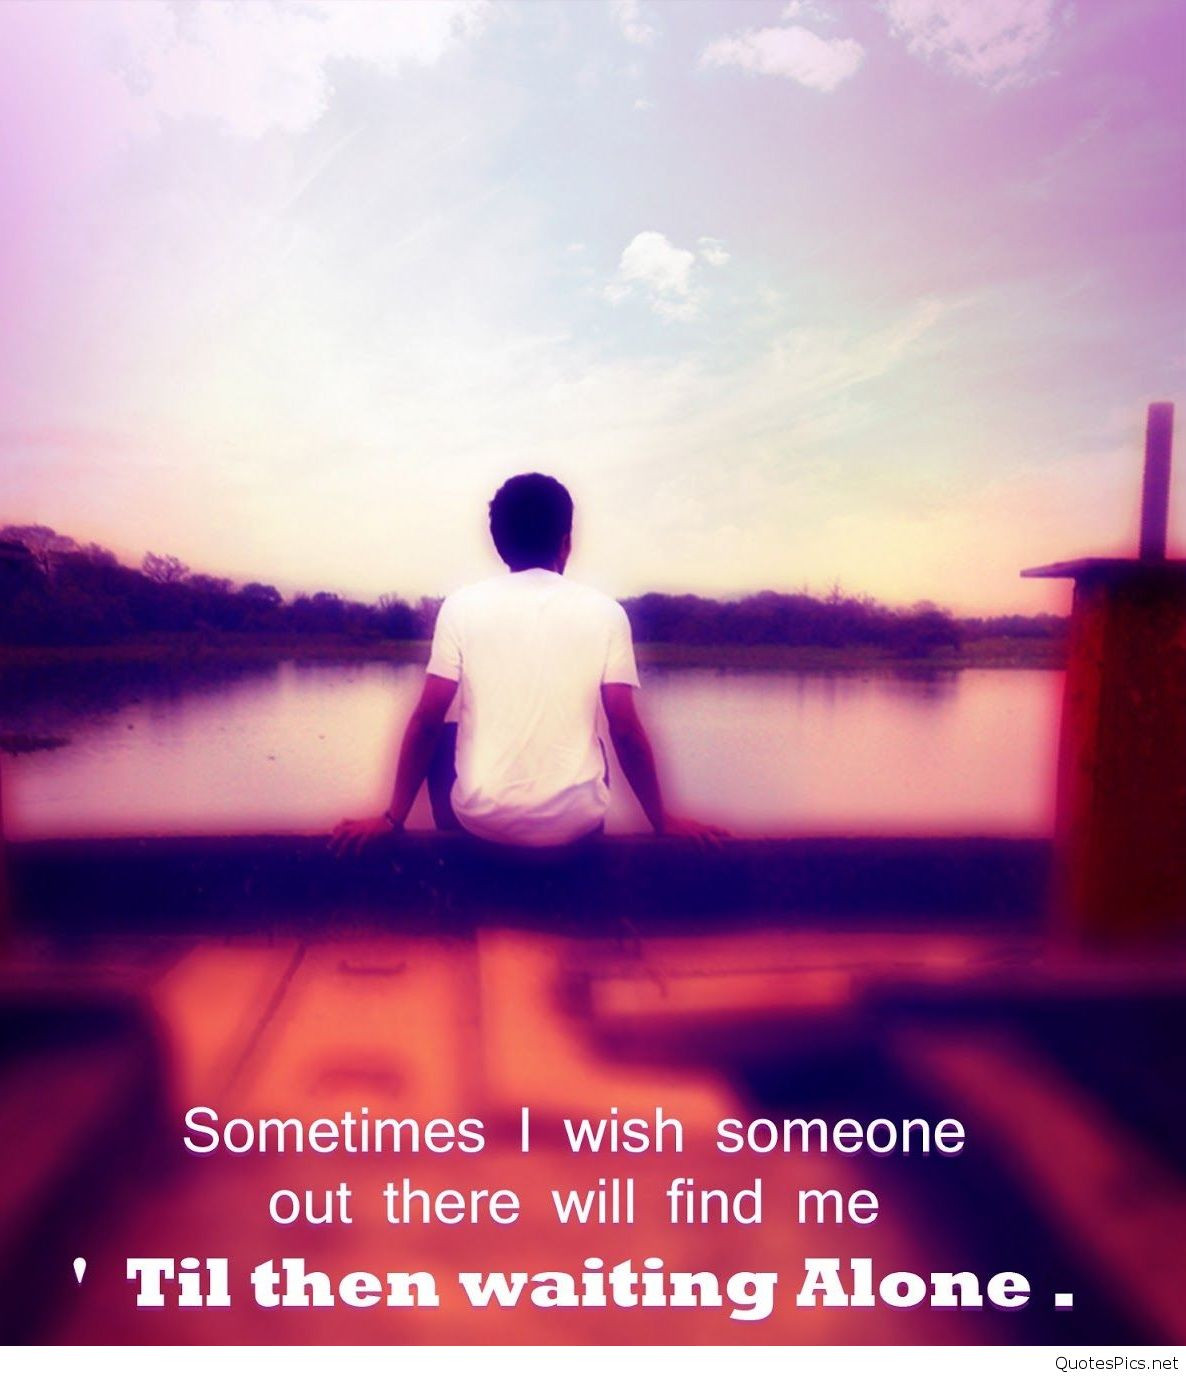 Alone Quotes Sad  Very sad quotes images pics wallpapers hd top